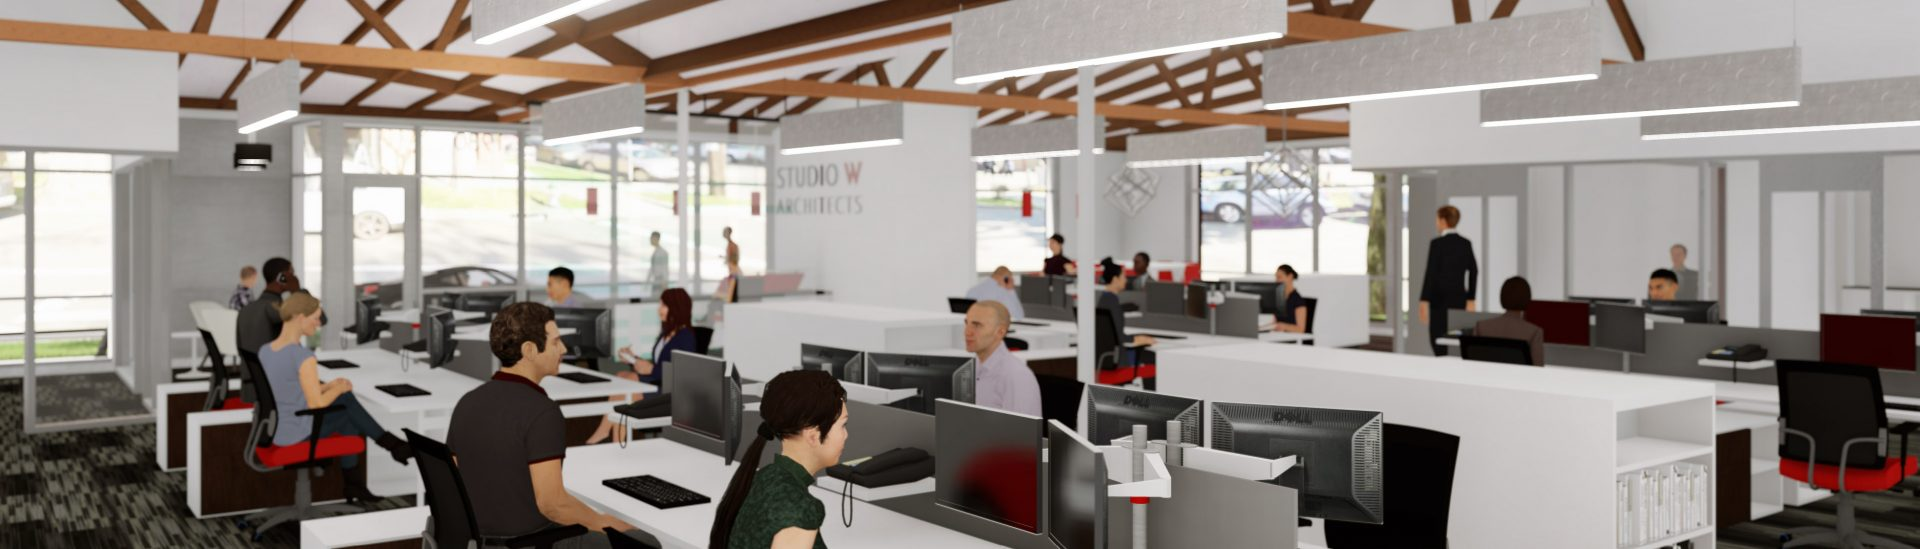 """""""Covid Disrupts Workplace Design"""" – Studio W Architects Featured in Sacramento Business Journal Focus Section"""